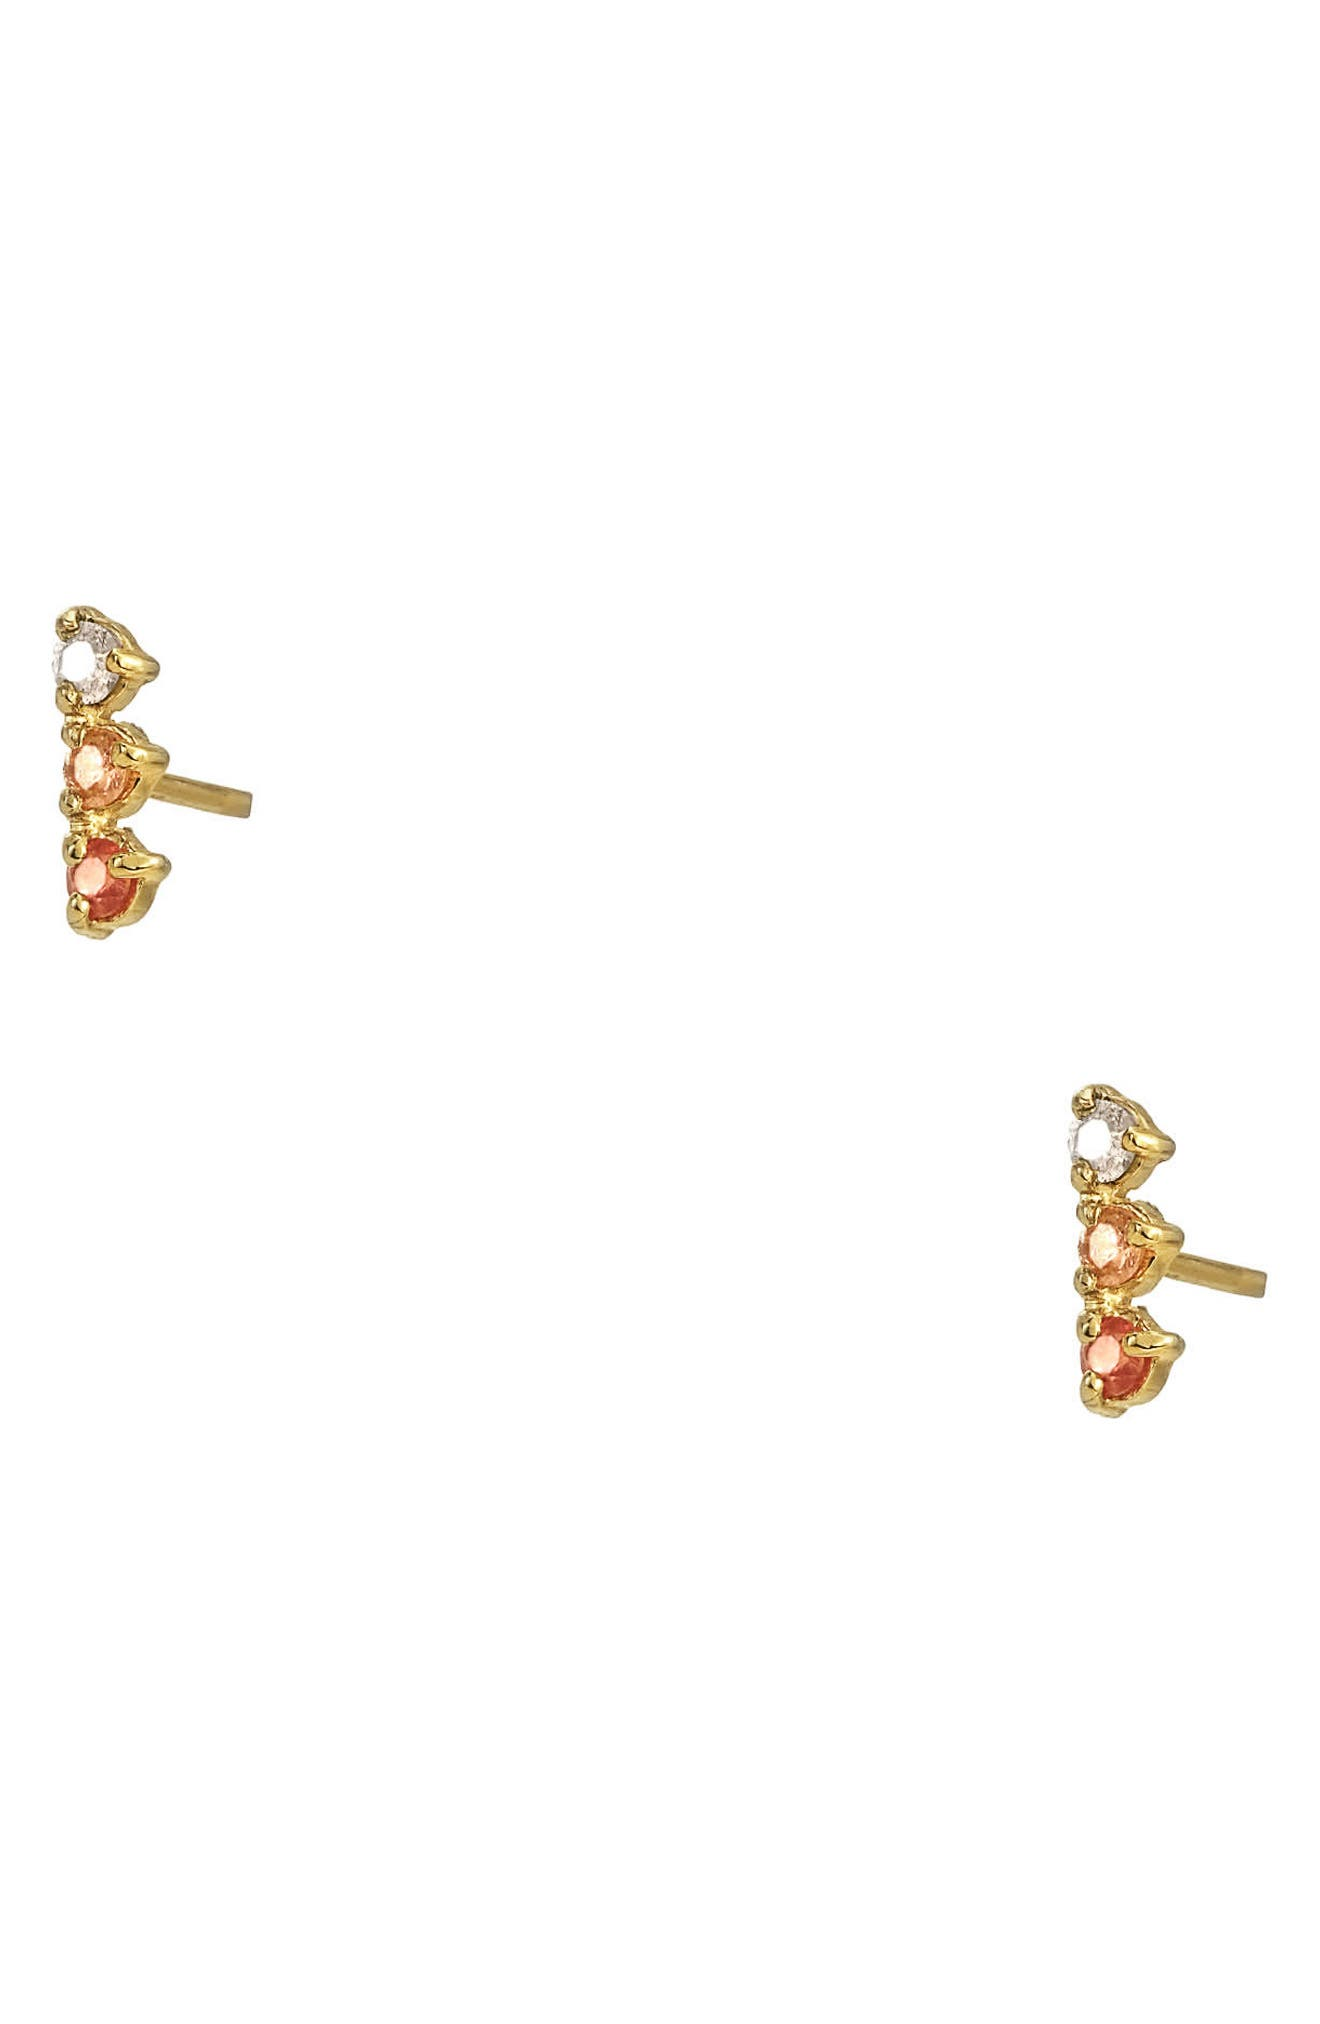 Counting Collection Three-Step Opal & Diamond Statement Earrings,                             Alternate thumbnail 2, color,                             PINK TOURMALINE SUNSTONE WHITE